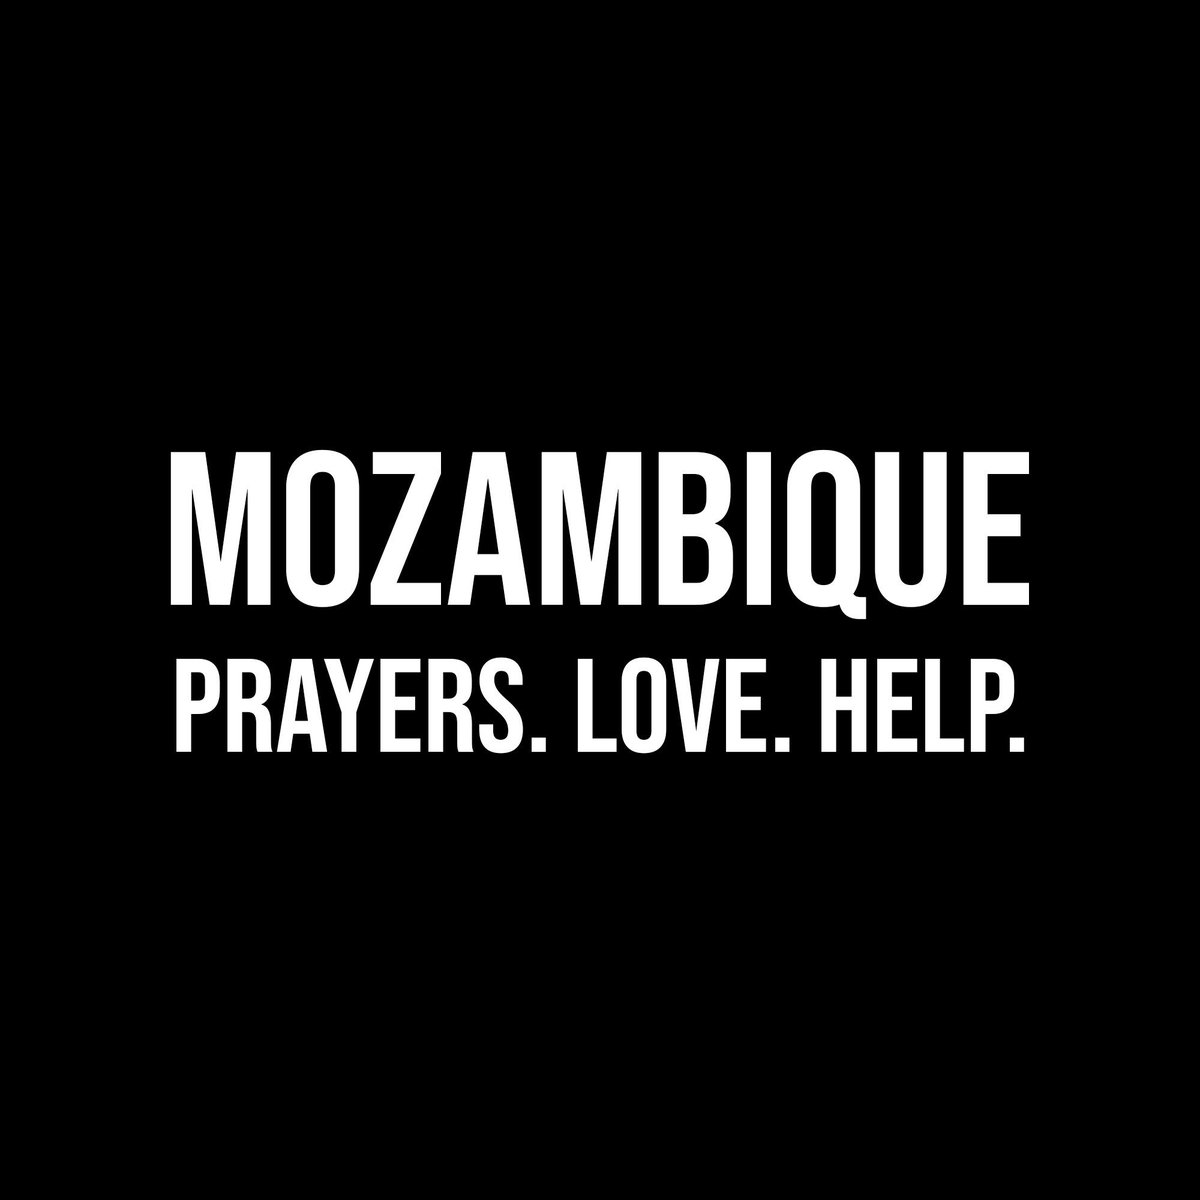 I urge us all to help Mozambique in this time of crisis. Let's put attention and action on this natural disaster. https://t.co/O7ZJBwKZiL